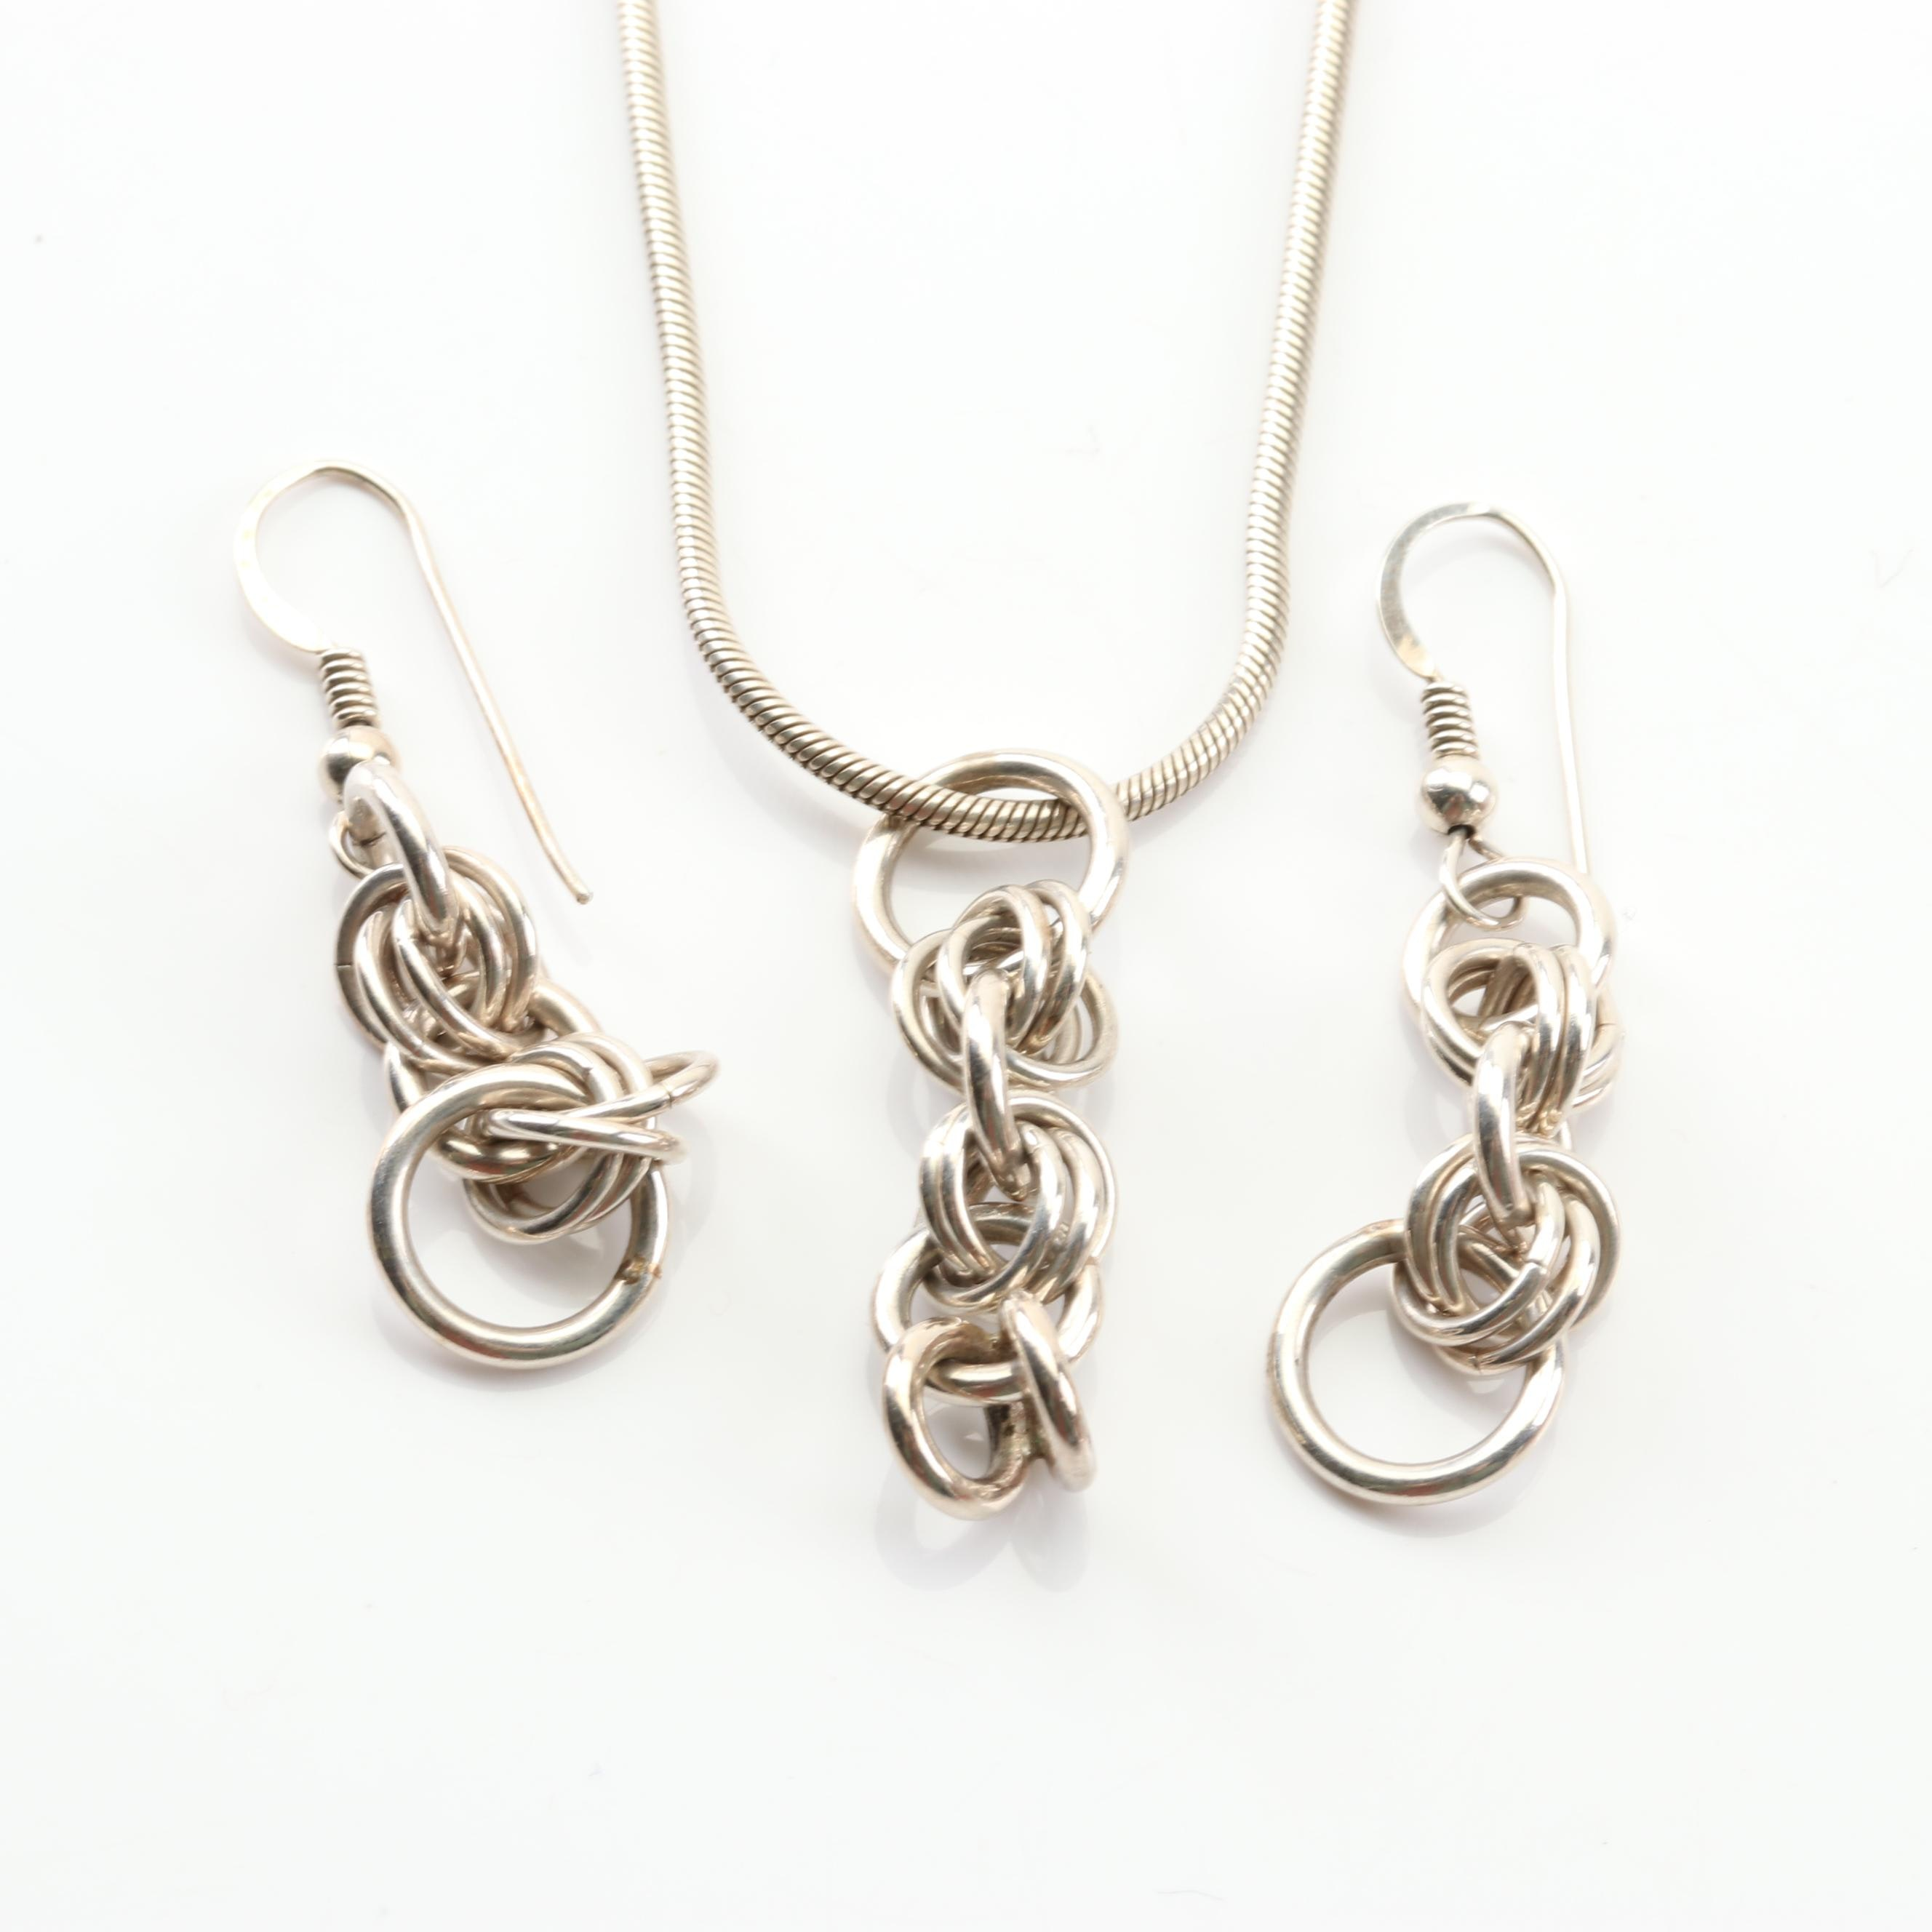 Italian Sterling Silver Pendant Necklace and Dangle Earring Set